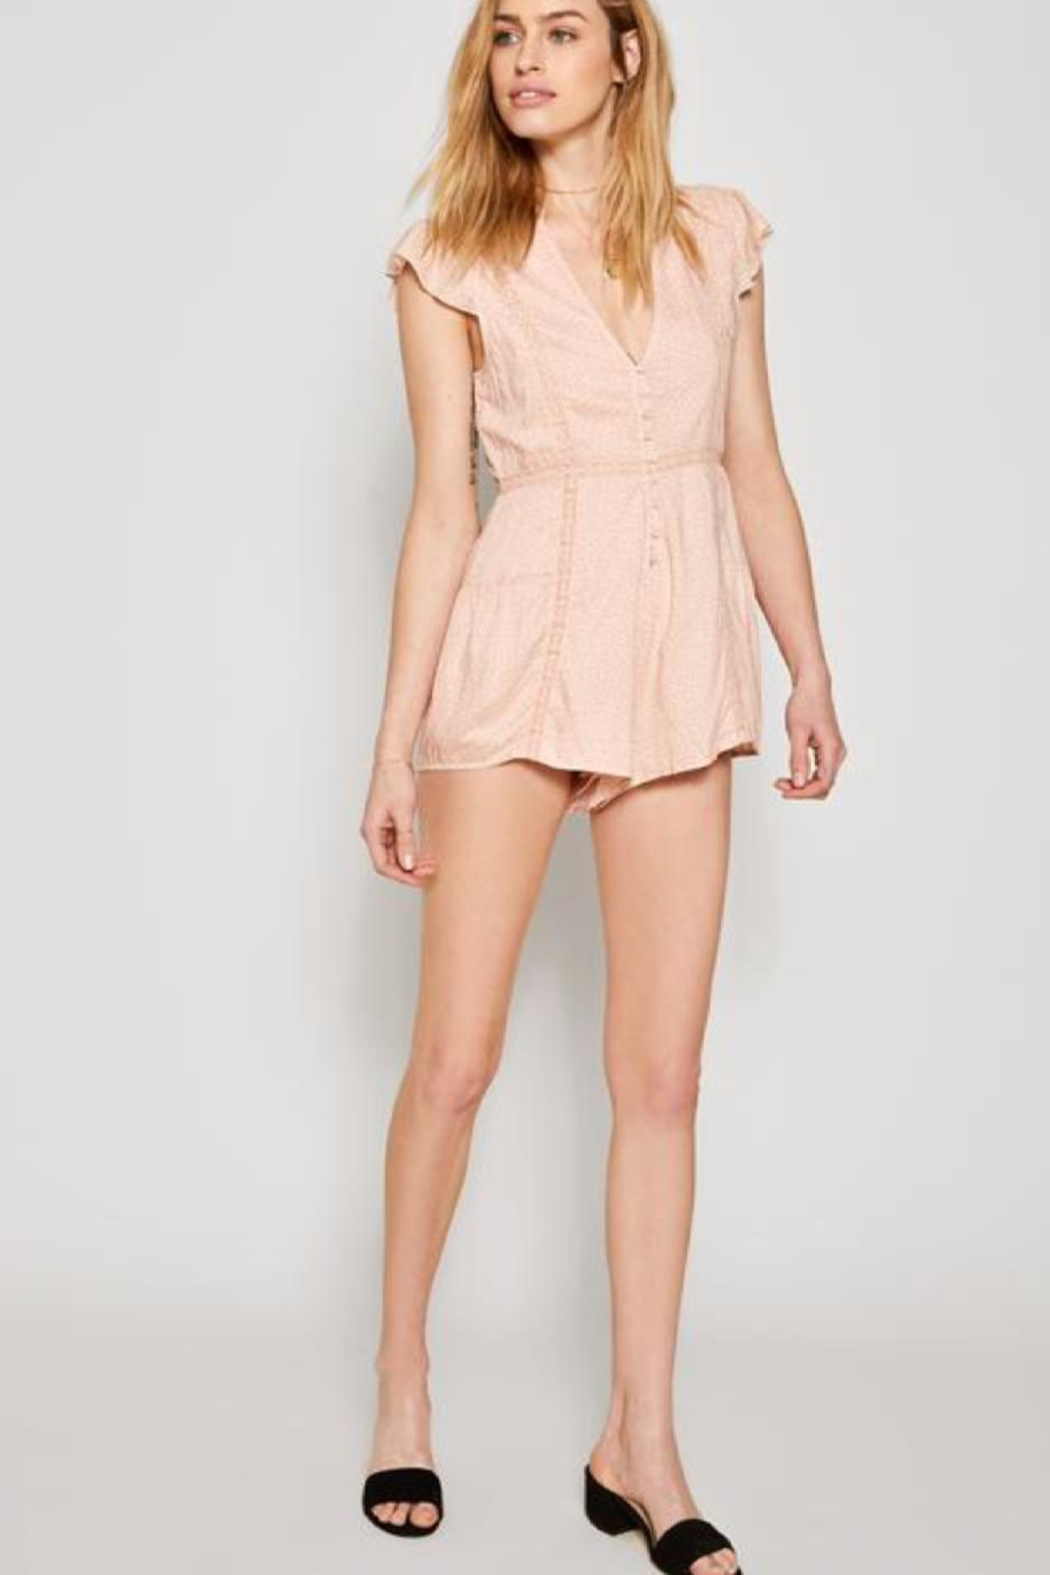 AMUSE SOCIETY Pink Lace Romper - Side Cropped Image